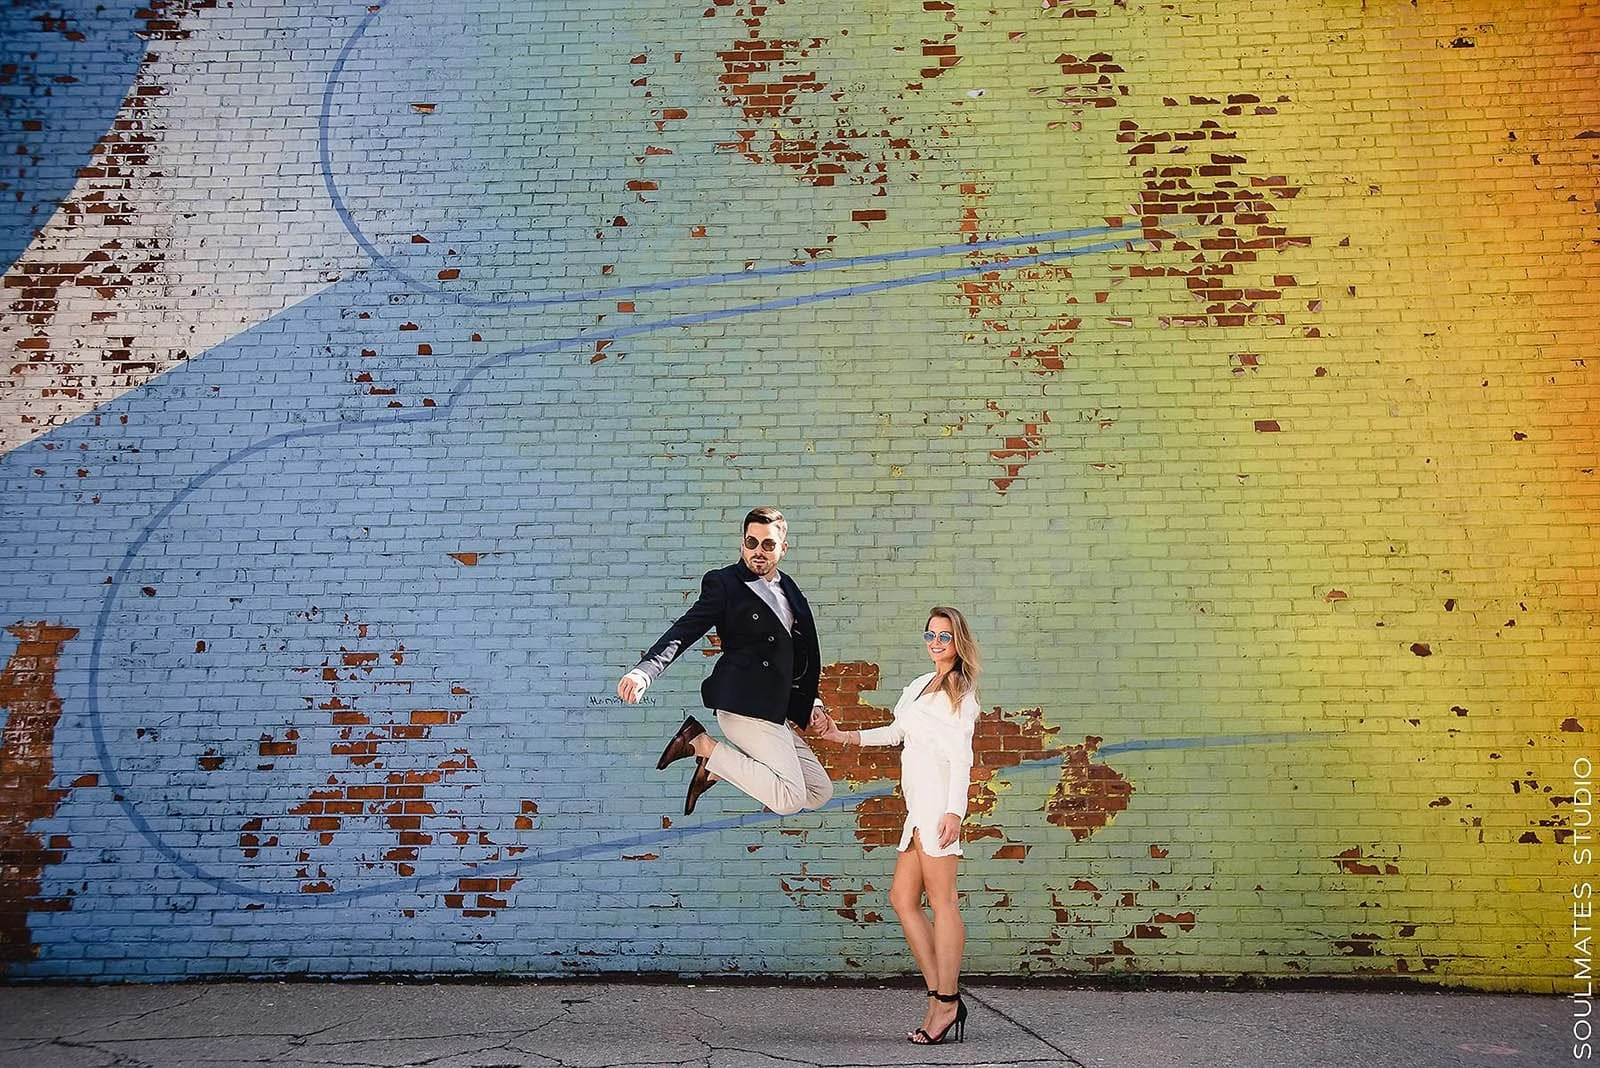 Groom to be jumping holding his fiance hand in front of the DUMBO graffiti wall